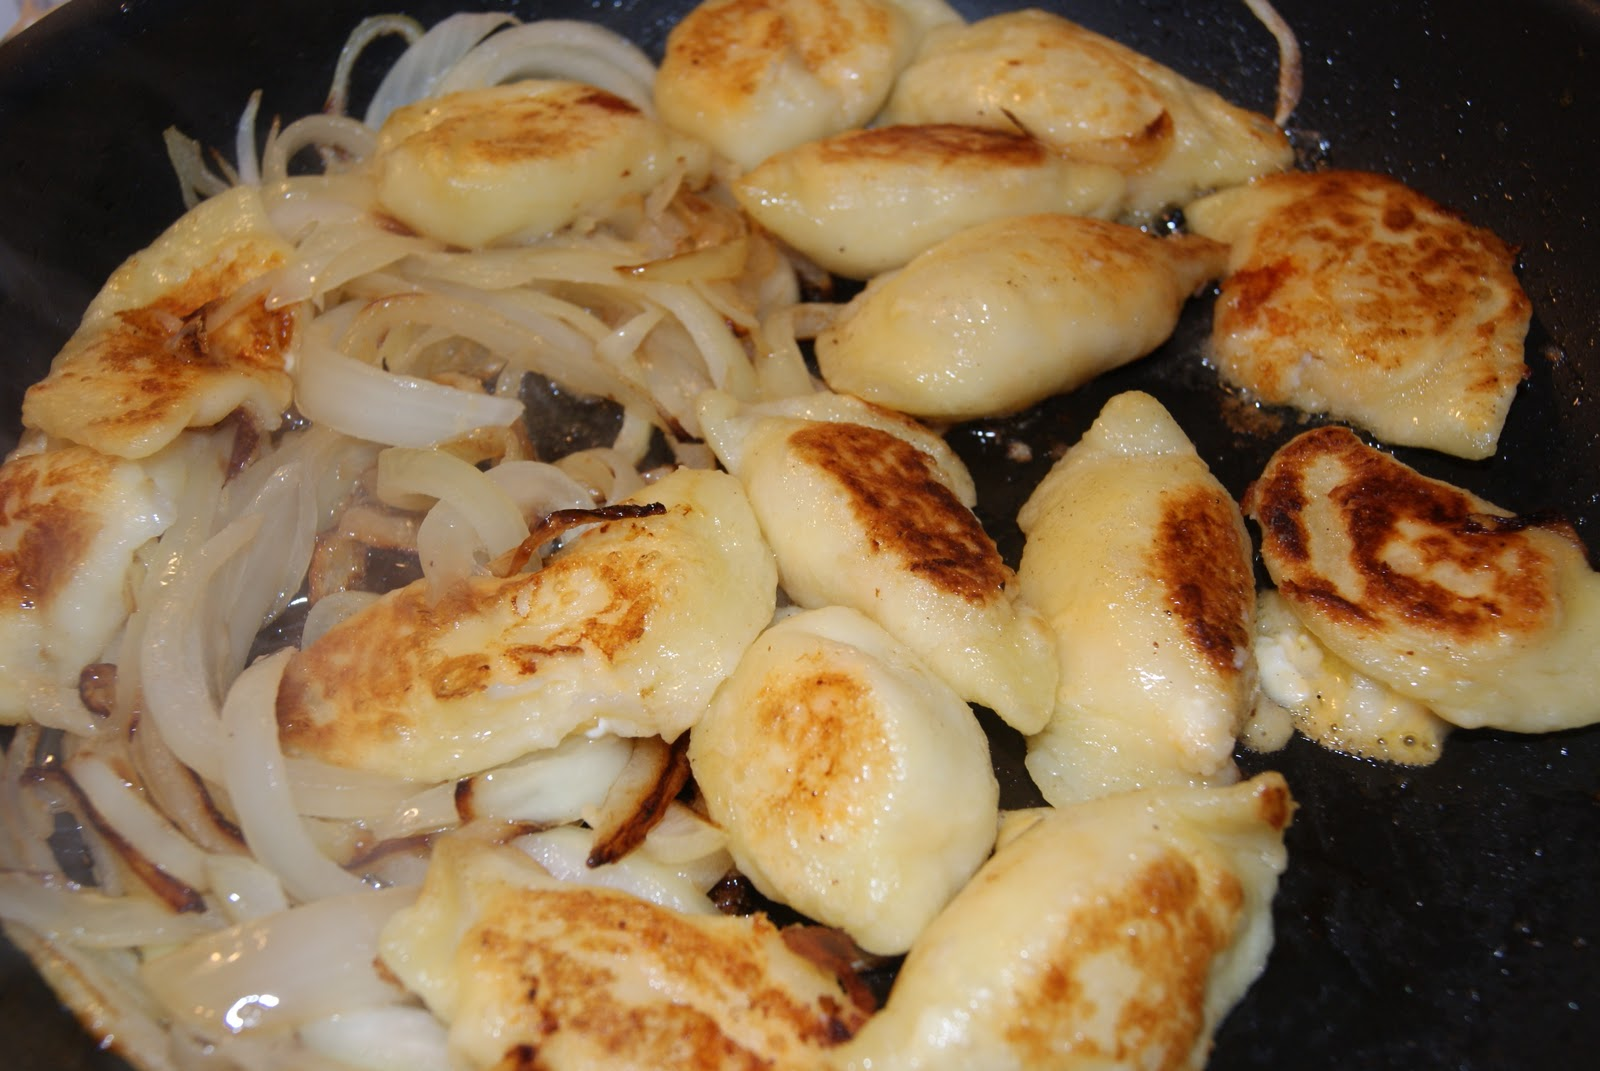 ... perogies, another person can boil the perogies....there is always a